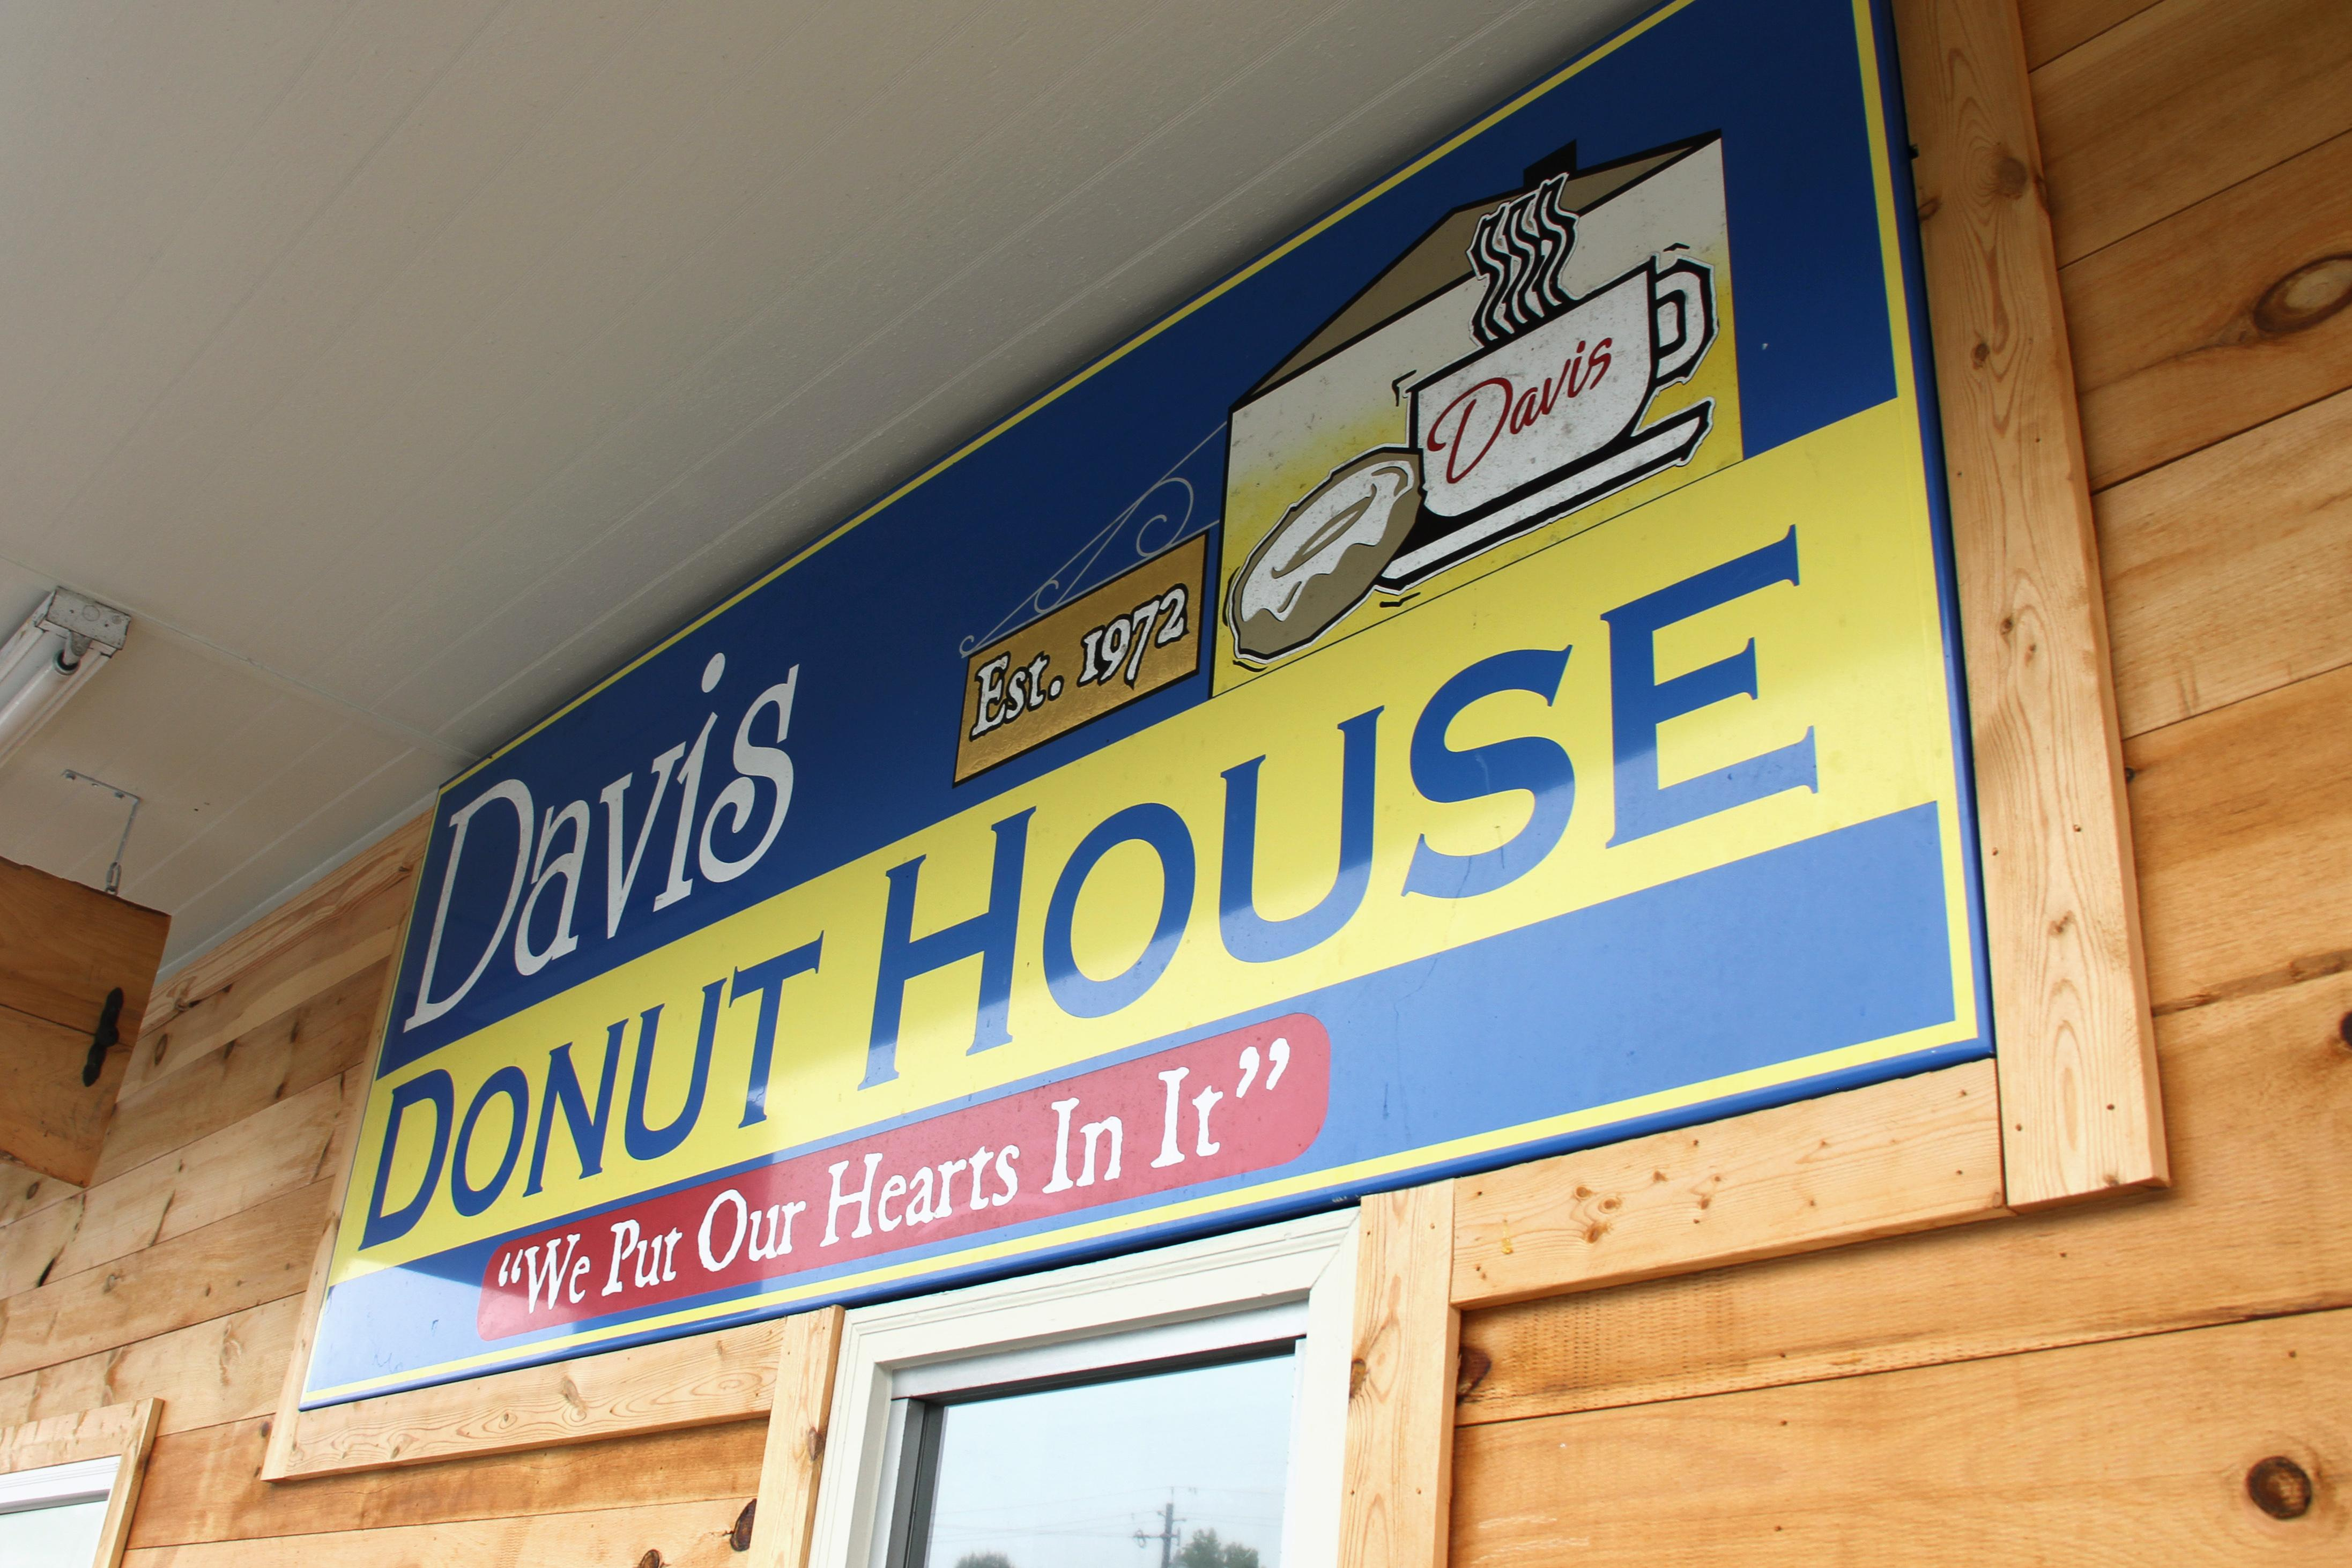 "Davis Donut House has been a staple for people in Forest City since 1972 when its doors first opened. Since then, the business has changed hands and locations a number of times, but the ""small town friendly"" service and approach to doughnut-making has stayed the same. (Photo credit: Kelly Doty)"